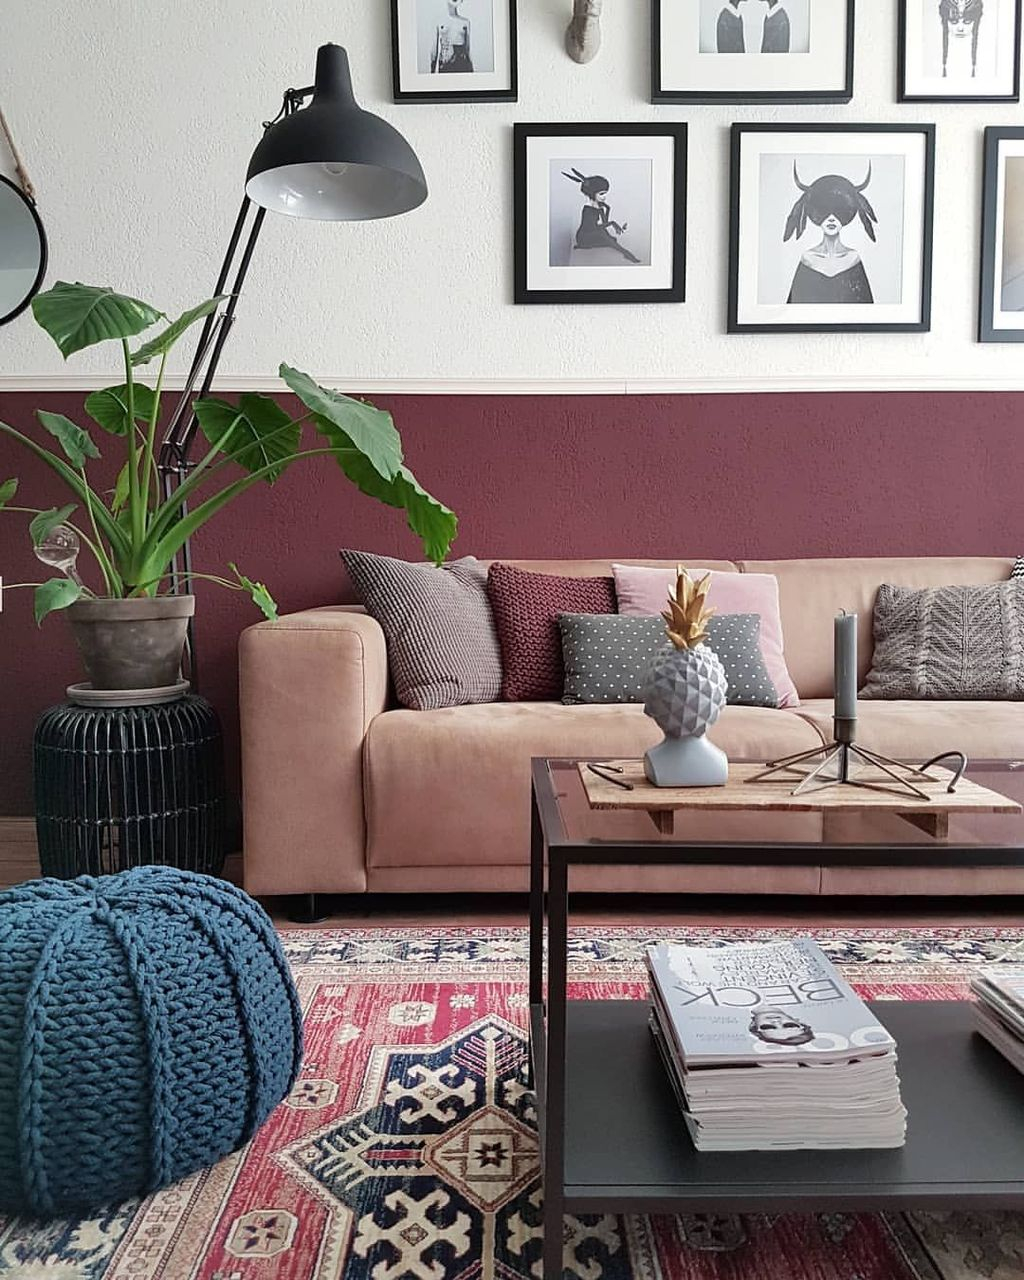 Best Tiny Living Room Design Ideas That Trend Nowaday 03